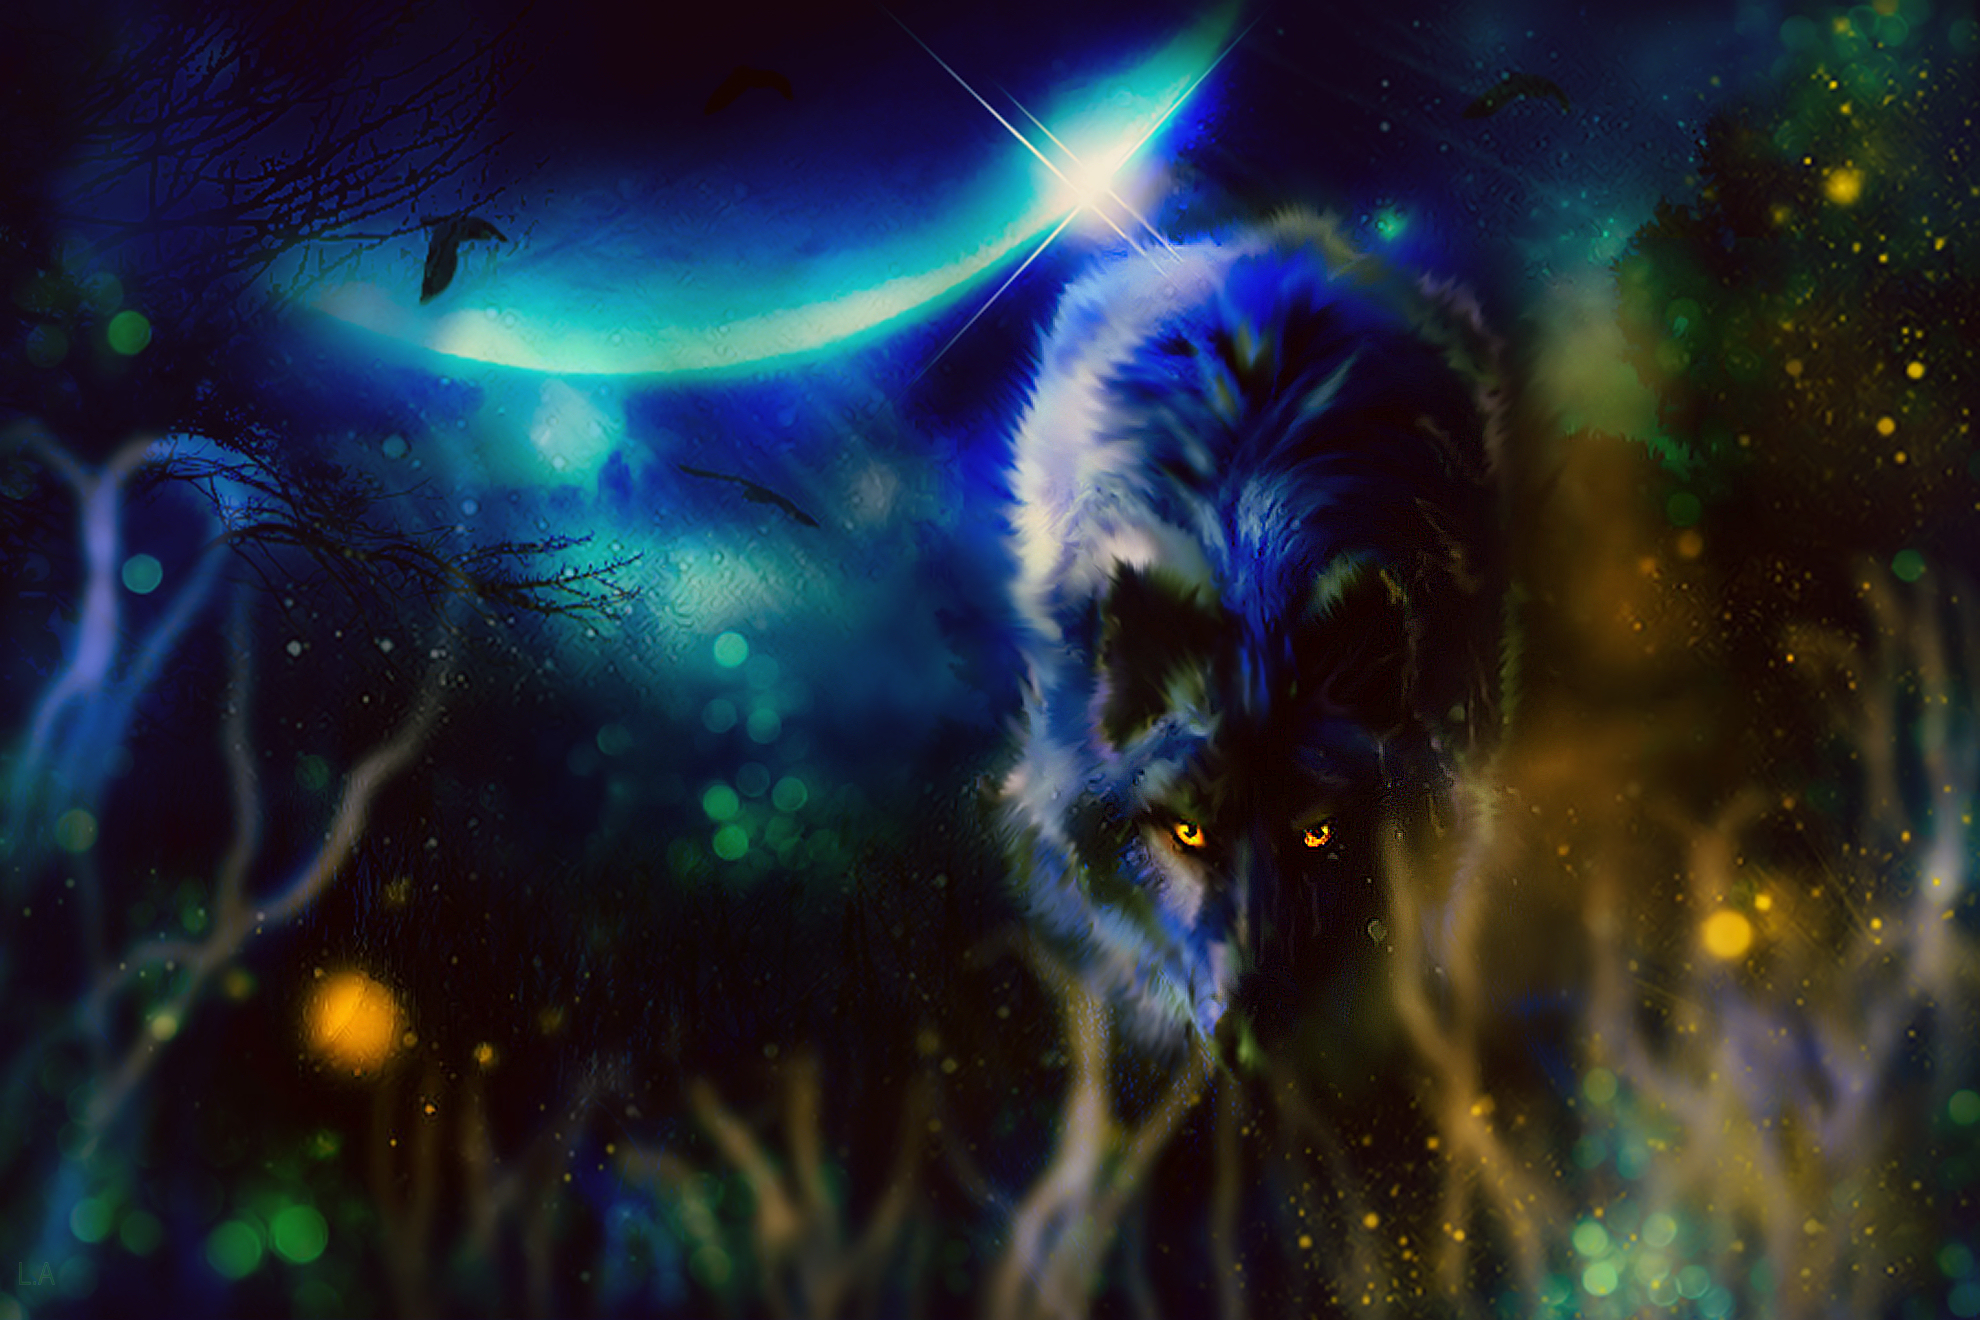 BLACK WOLF Image - ID: 213743 - Image Abyss